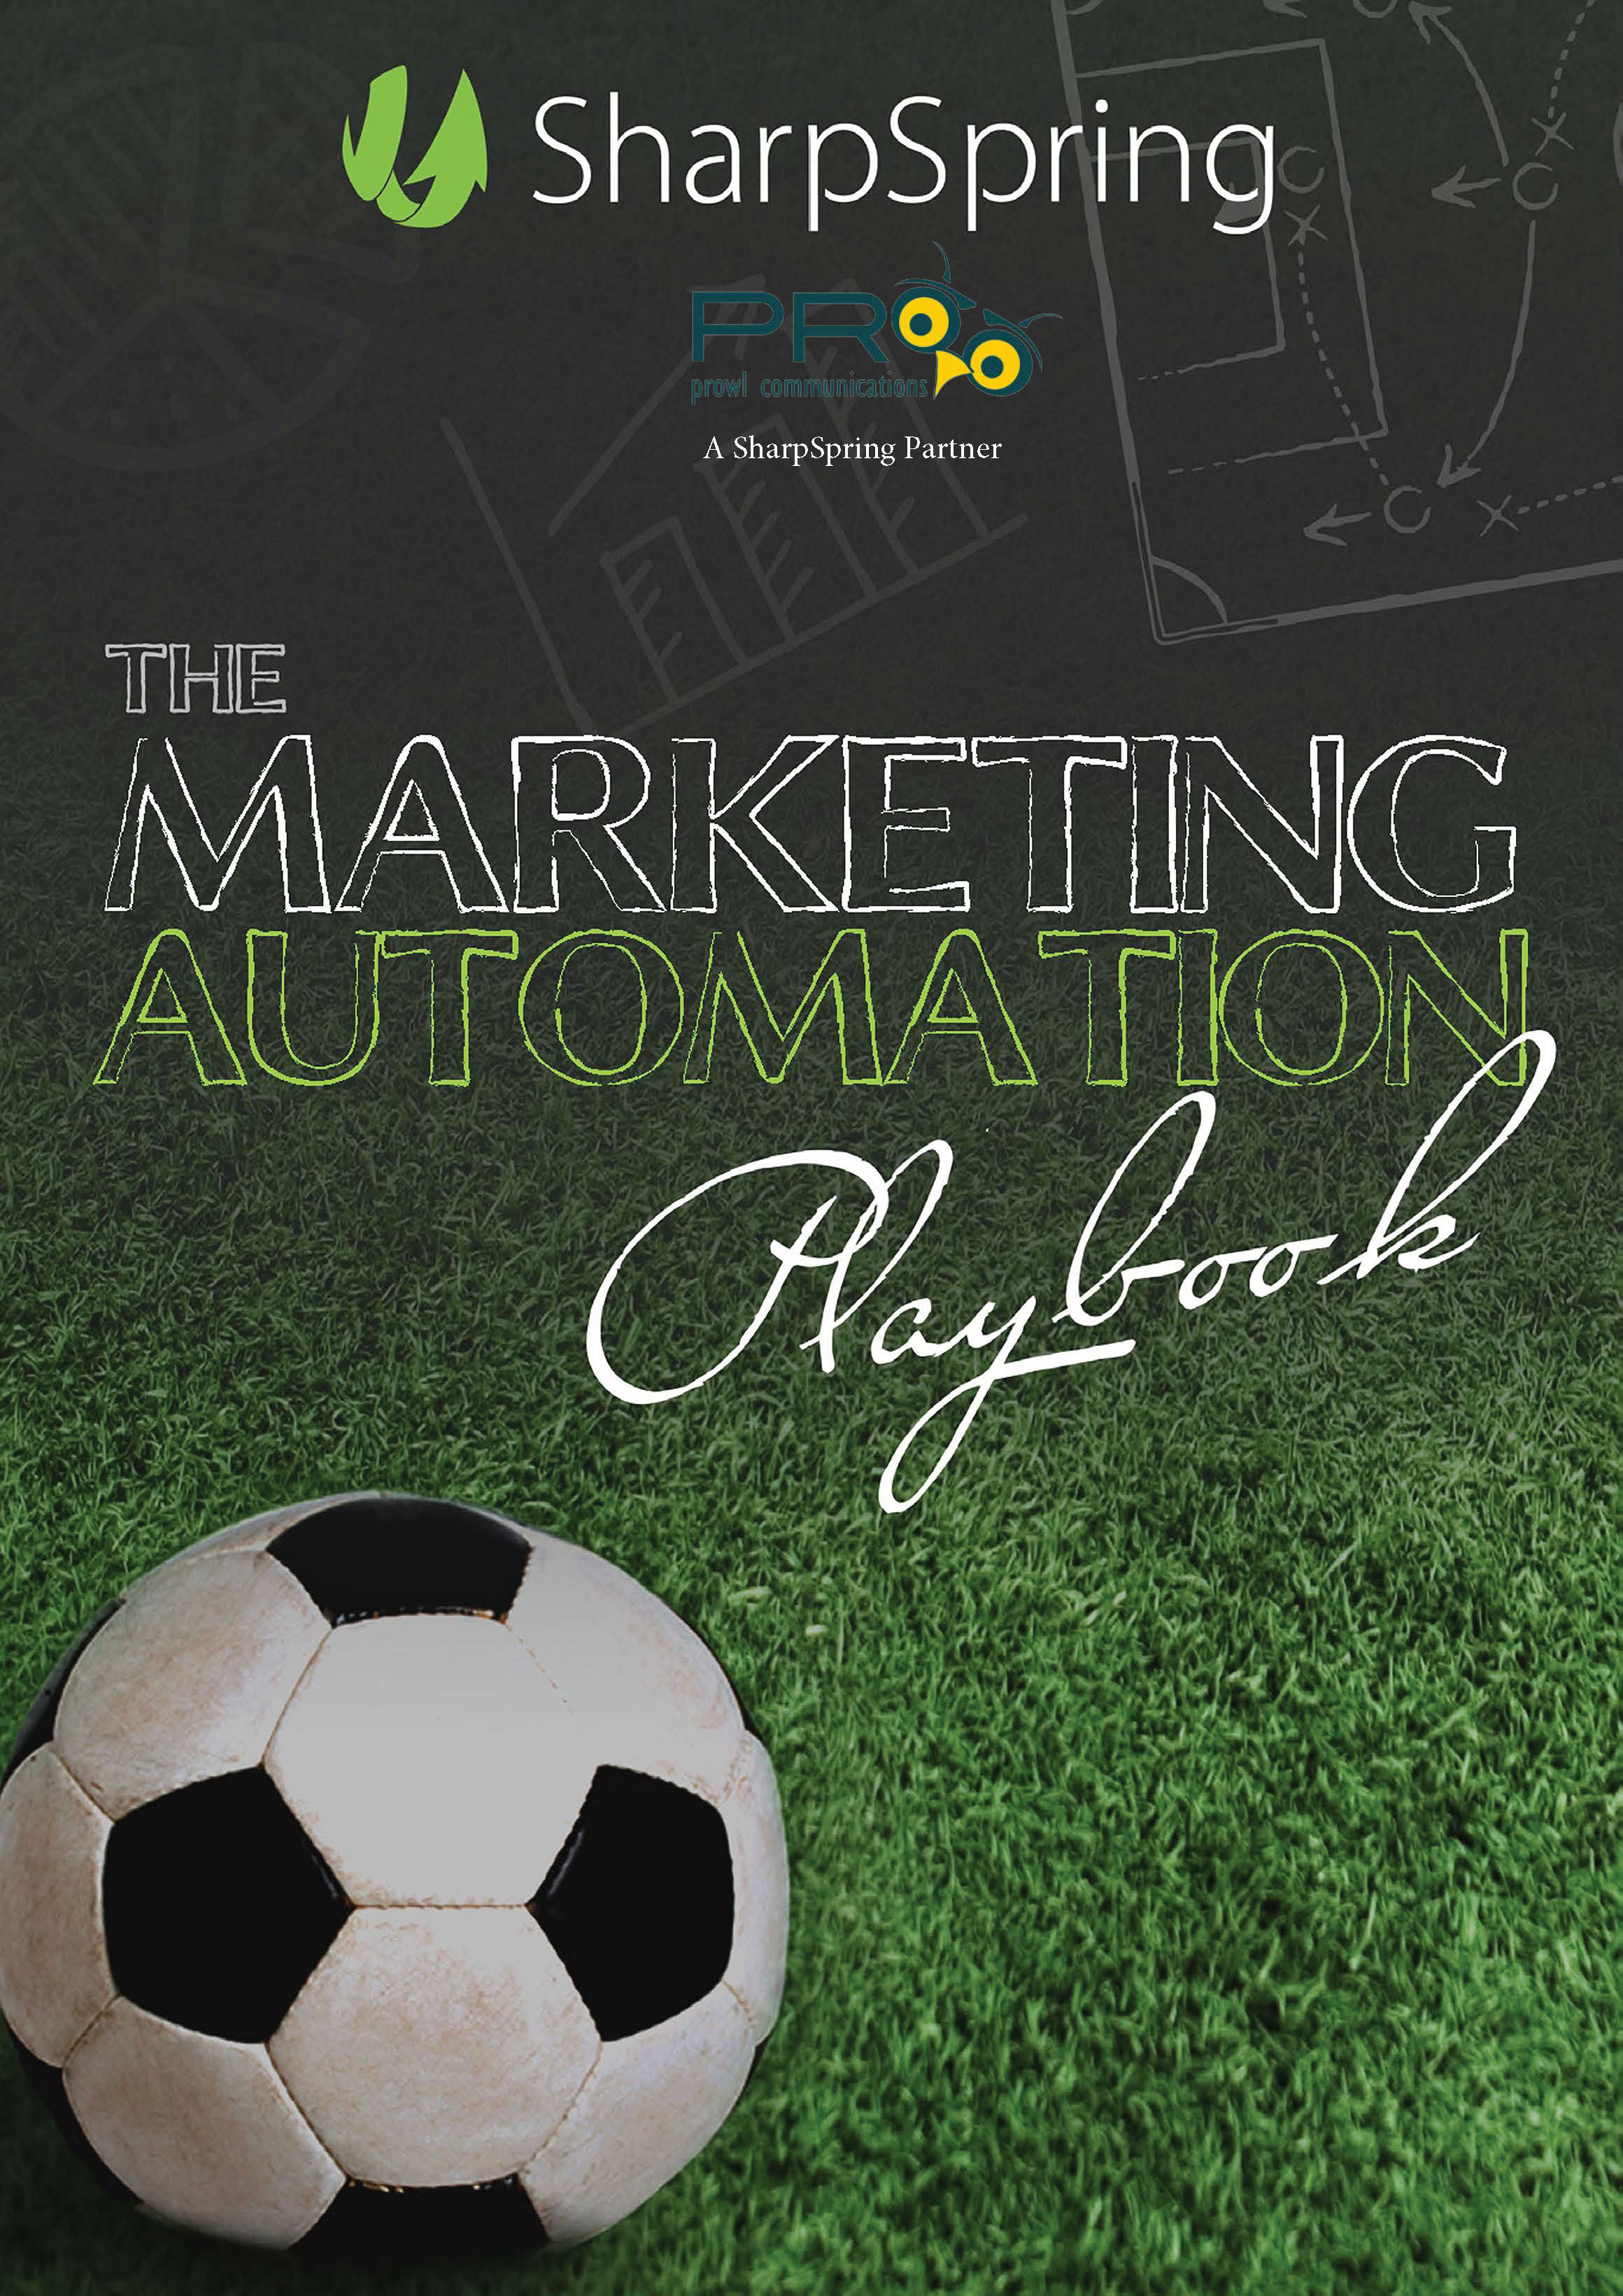 soccer goal field marketing automation playbook cover